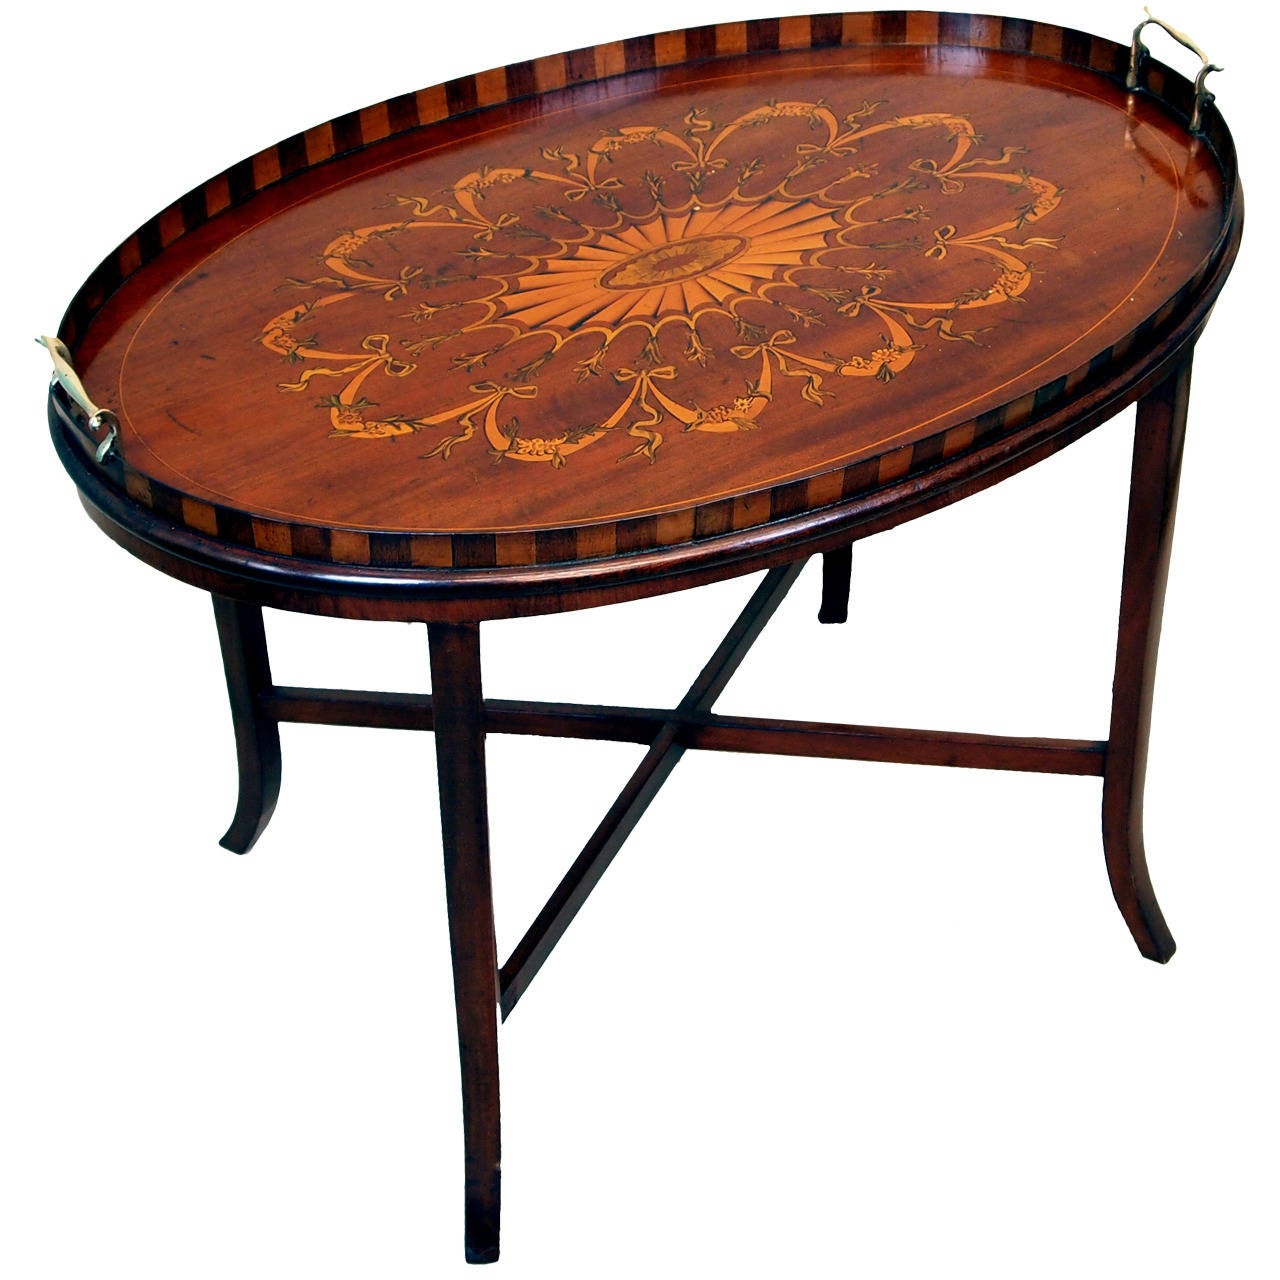 Oval Coffee Table Tray: Antique Mahogany Oval Tray On Stand At 1stdibs